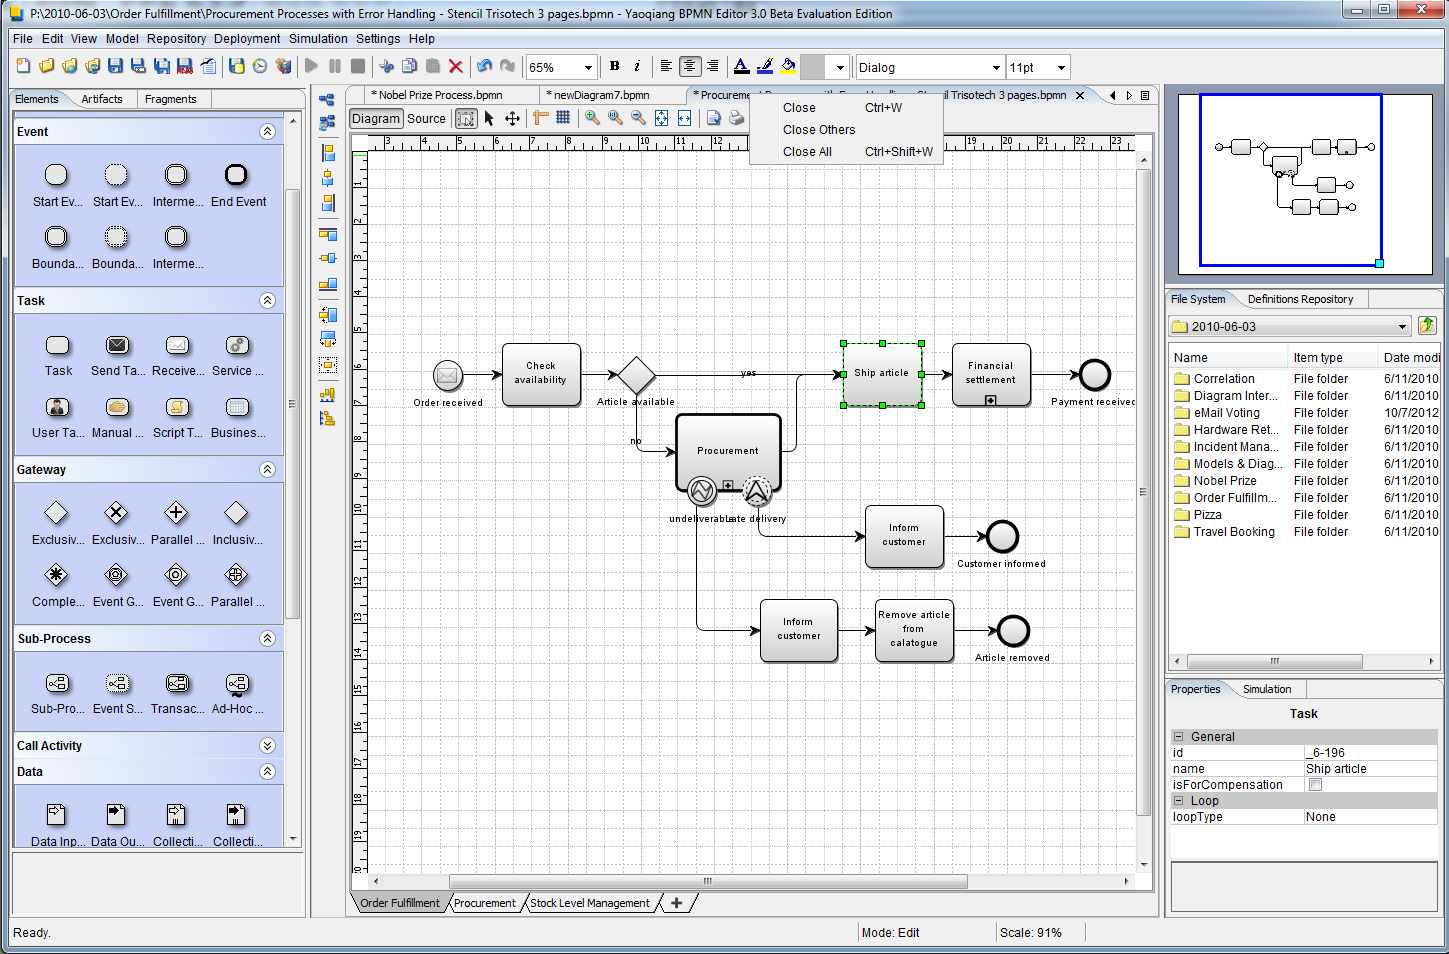 Yaoqiang Bpmn Editor Download